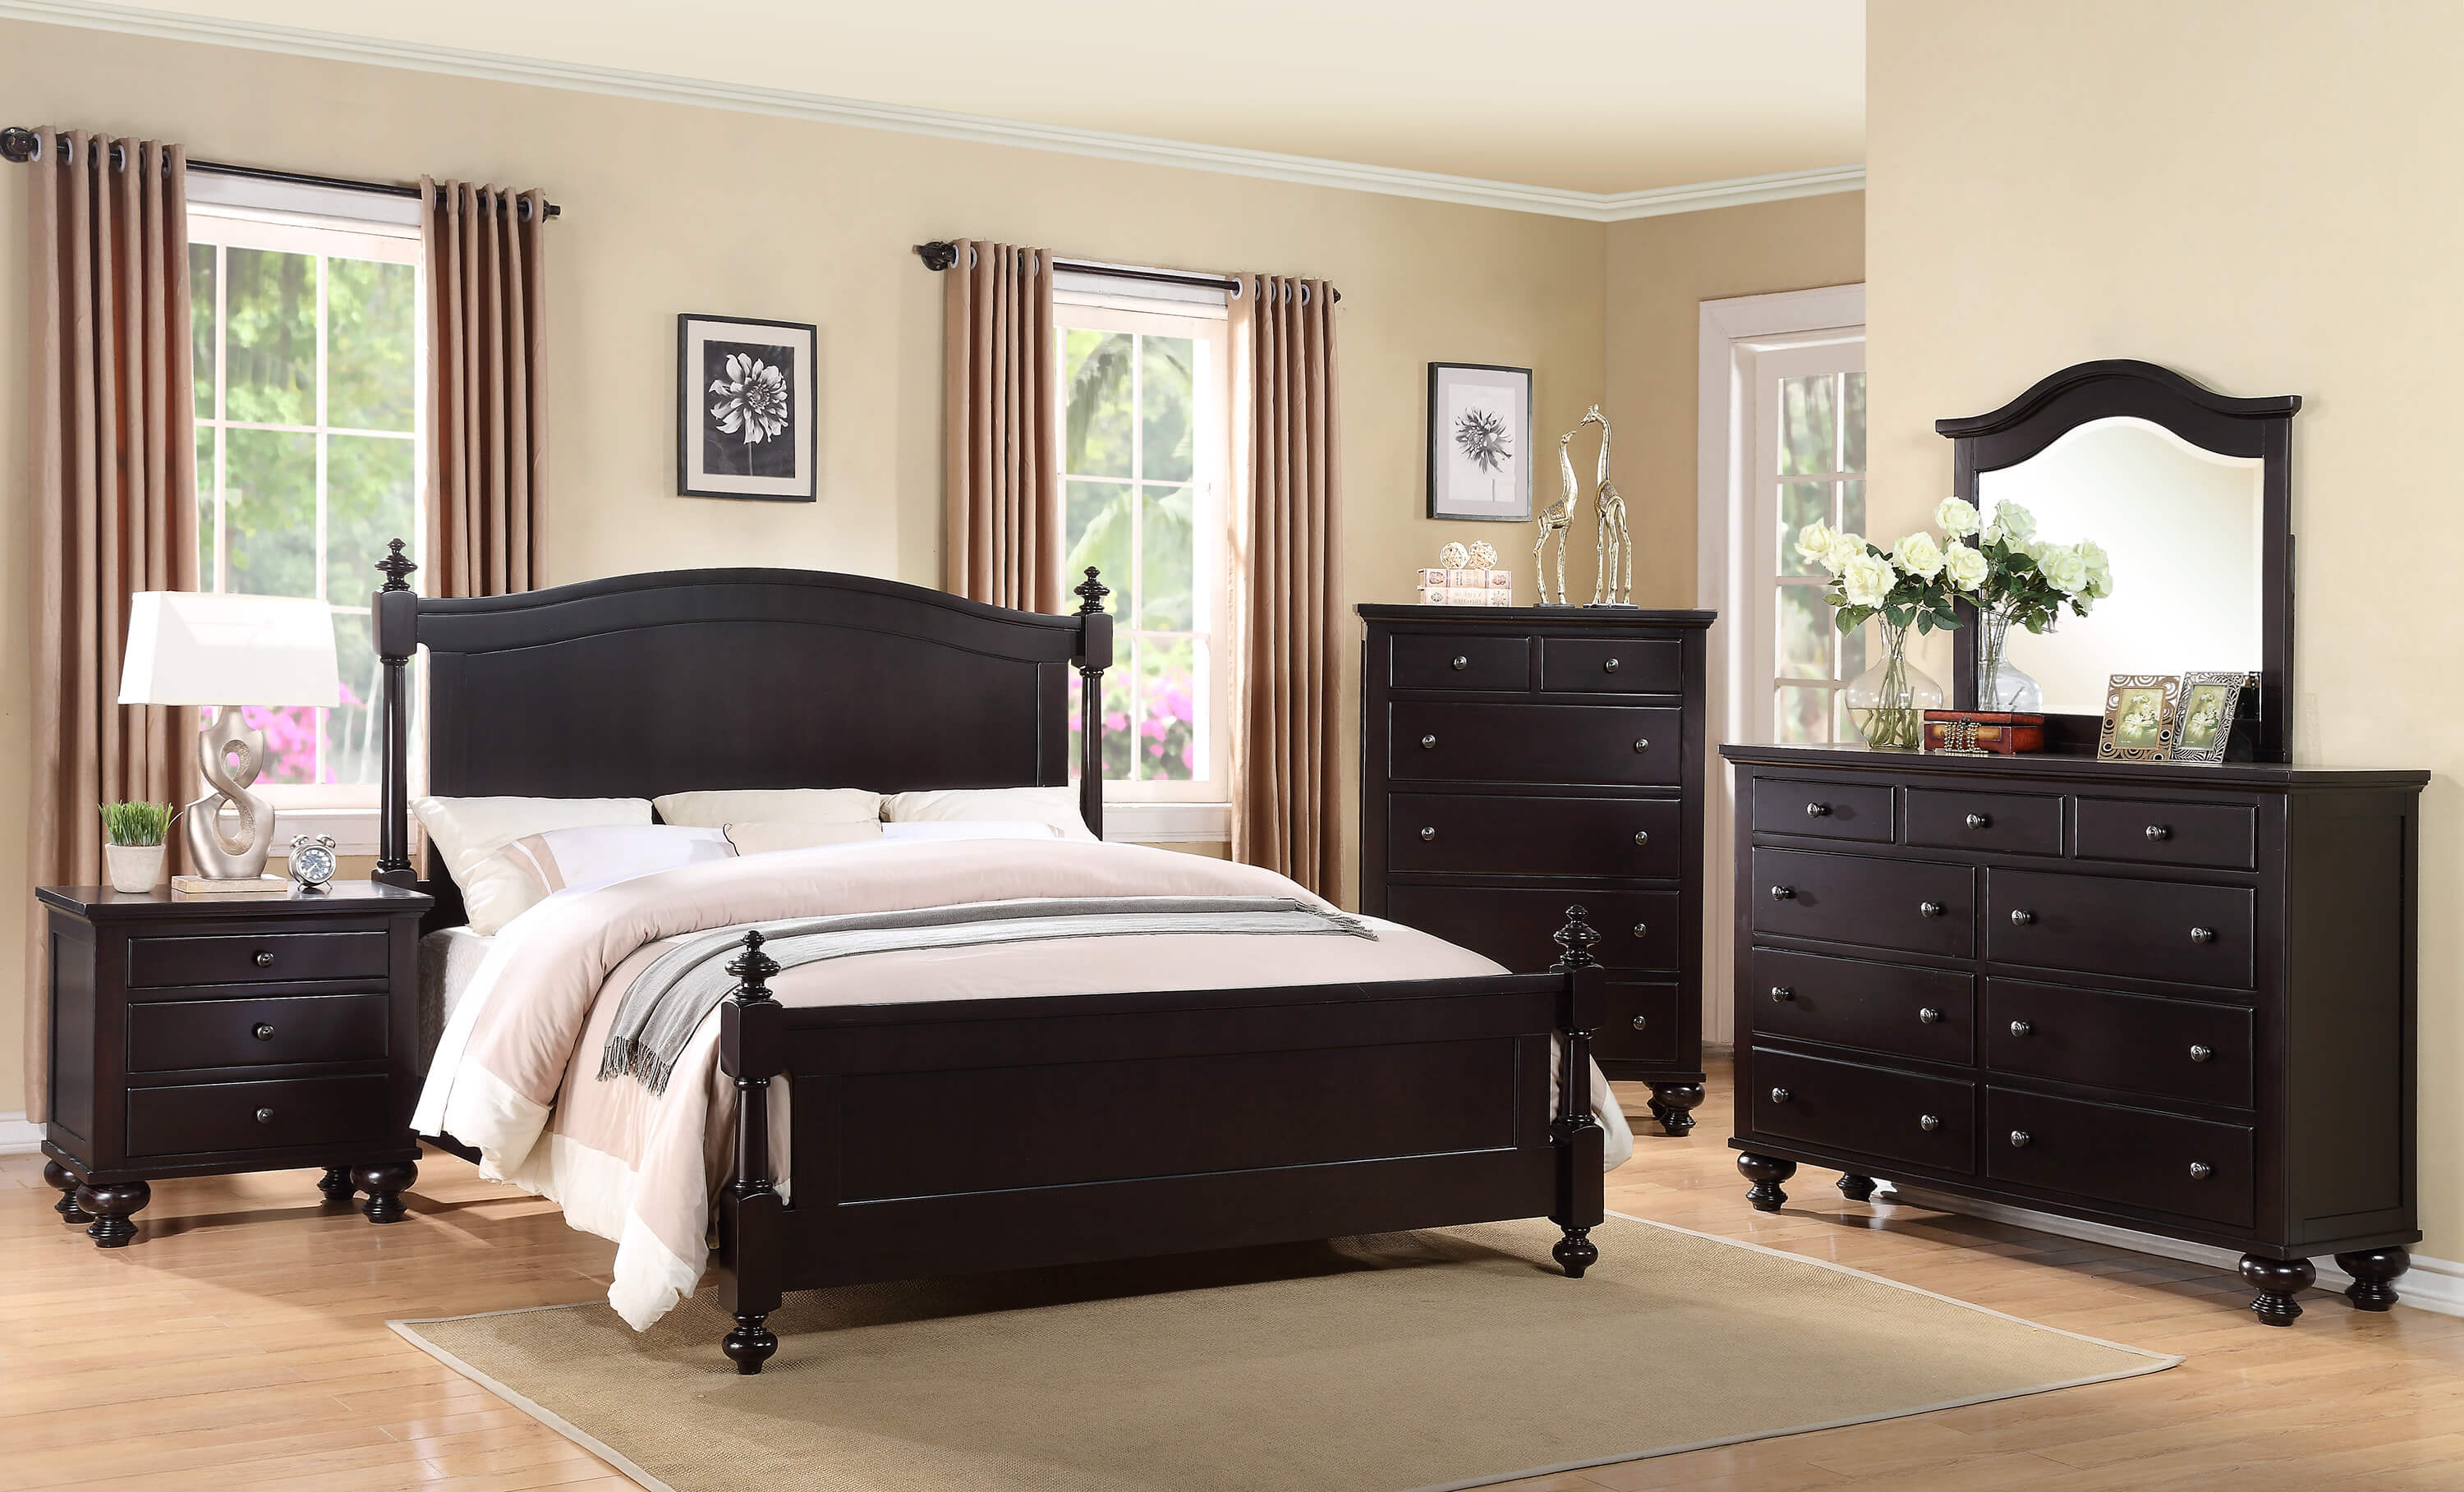 Sommer Black Bedroom Set